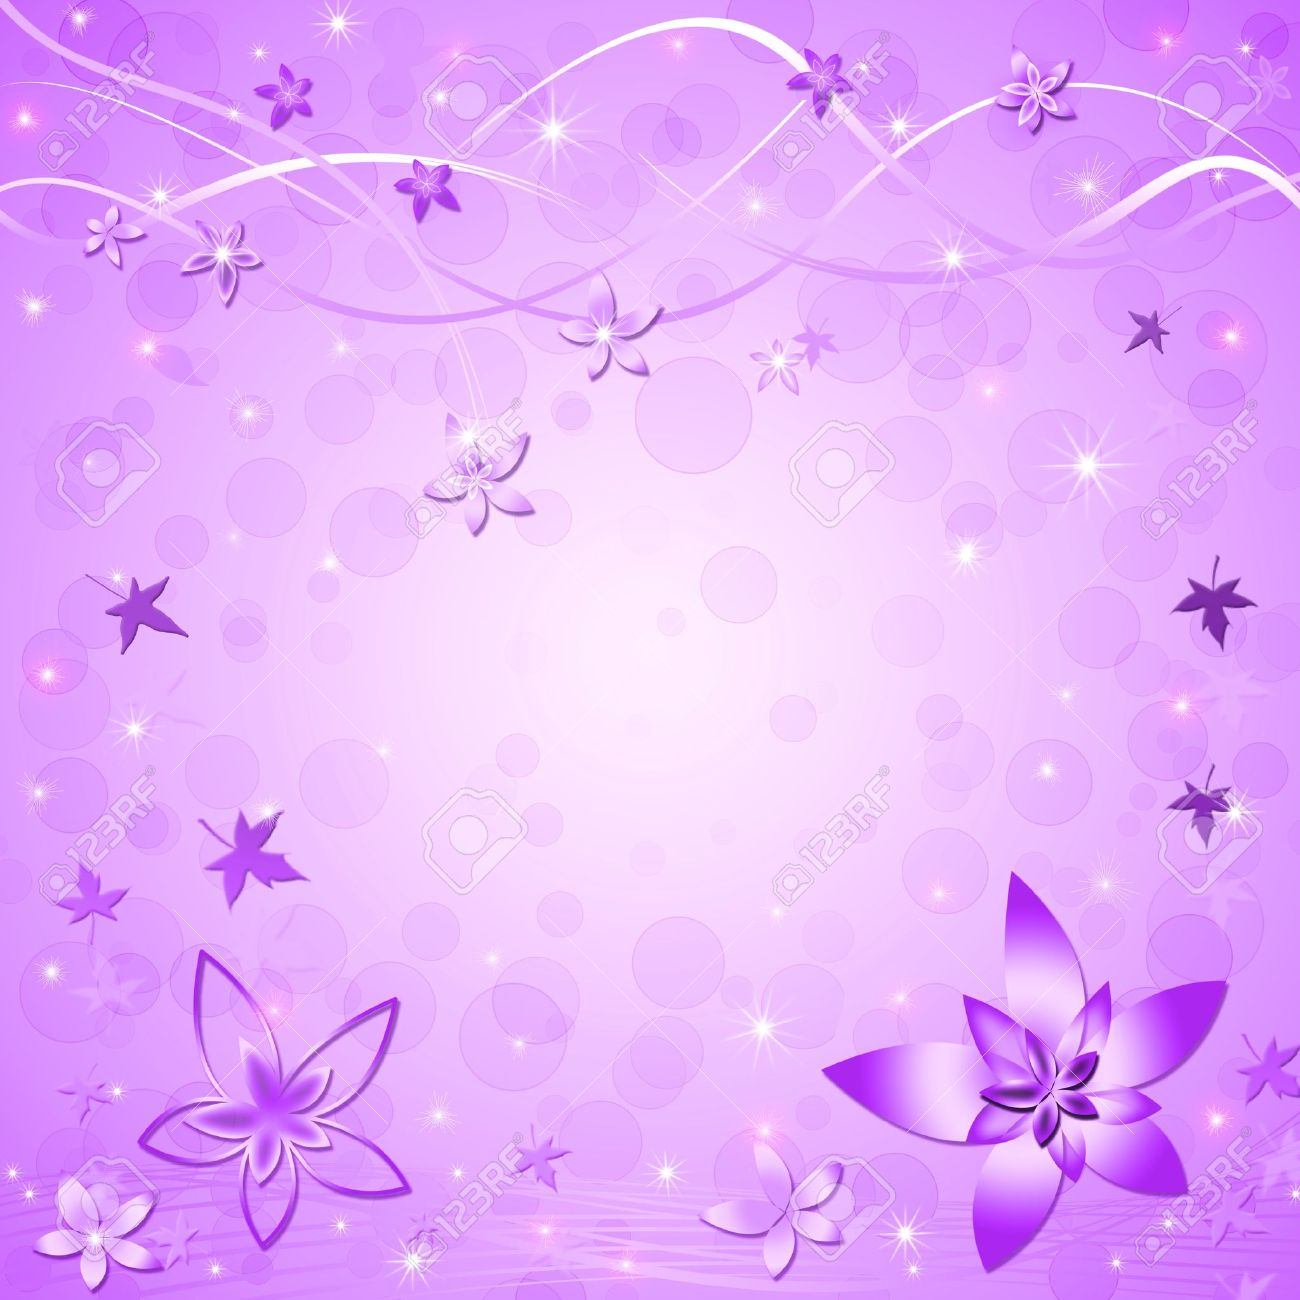 Beautiful Springsummer Violet Background With Leaves And Flowers 1300x1300